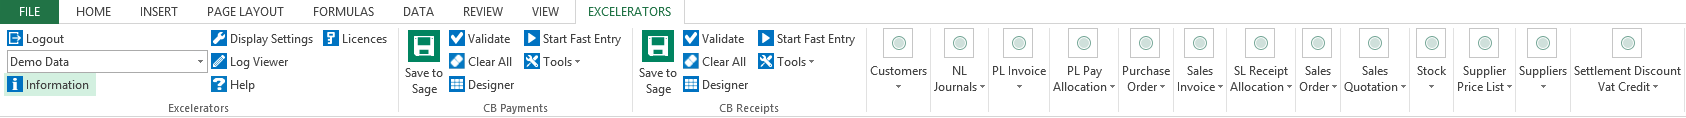 Codis Excelerator for Sage 200 - How It Can Improve Your Business - Sage UK